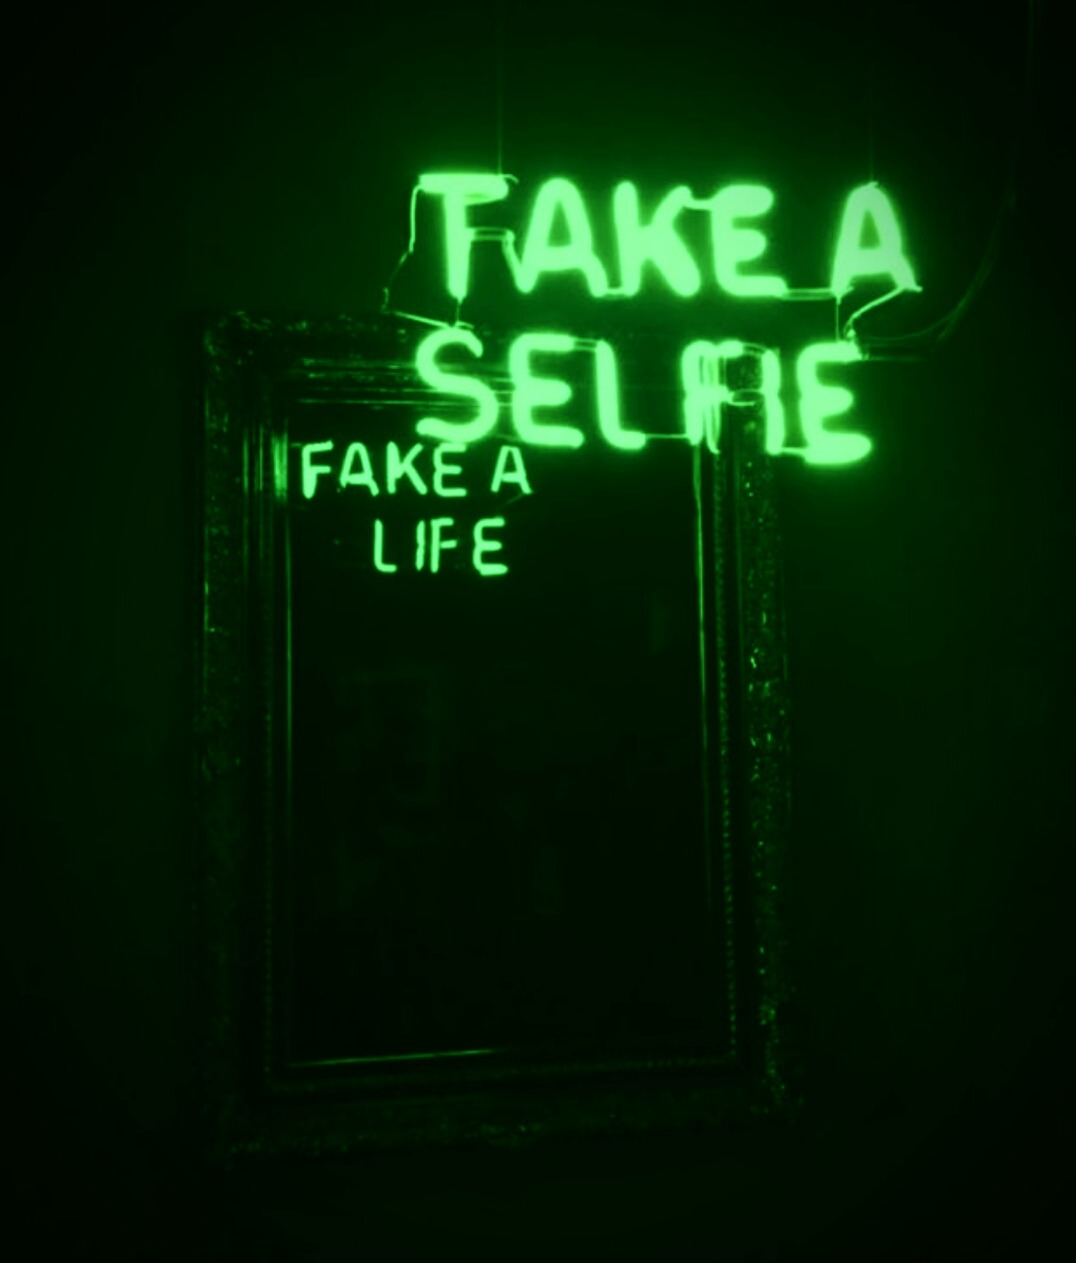 green, glow blog, glow art and neon signs